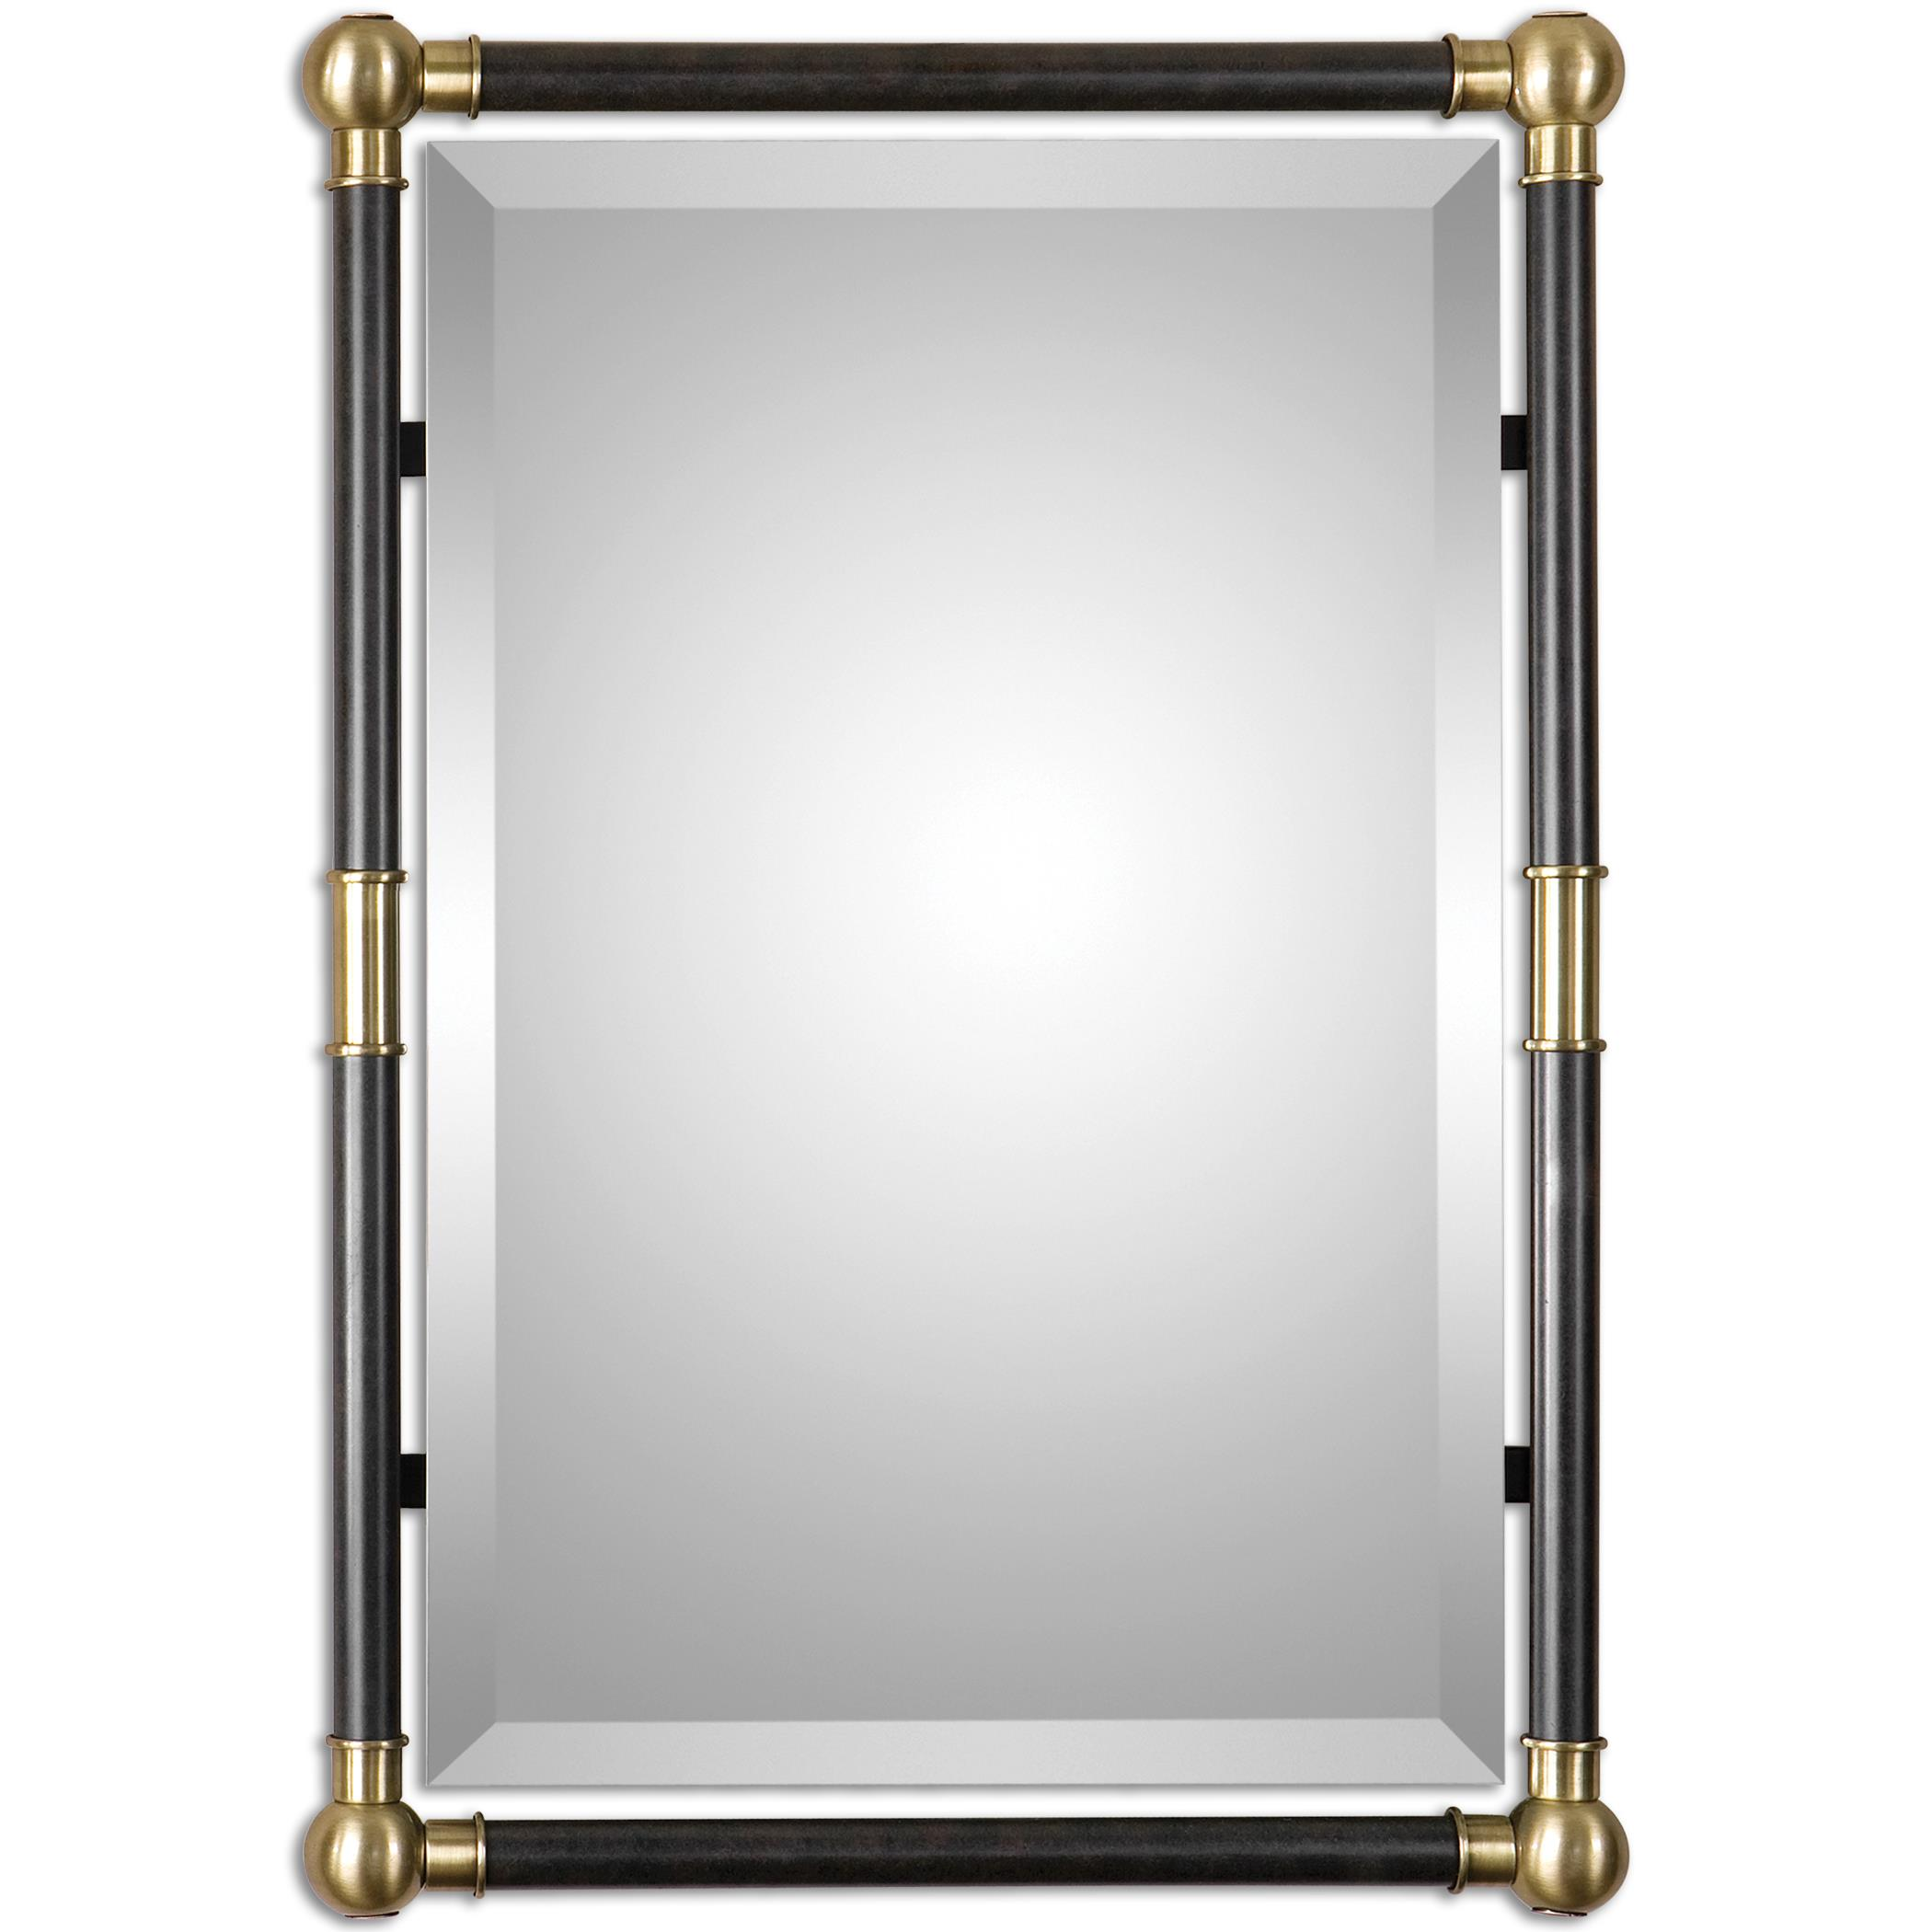 Uttermost Mirrors Rondure Bronze Metal Wall Mirror - Item Number: 01131